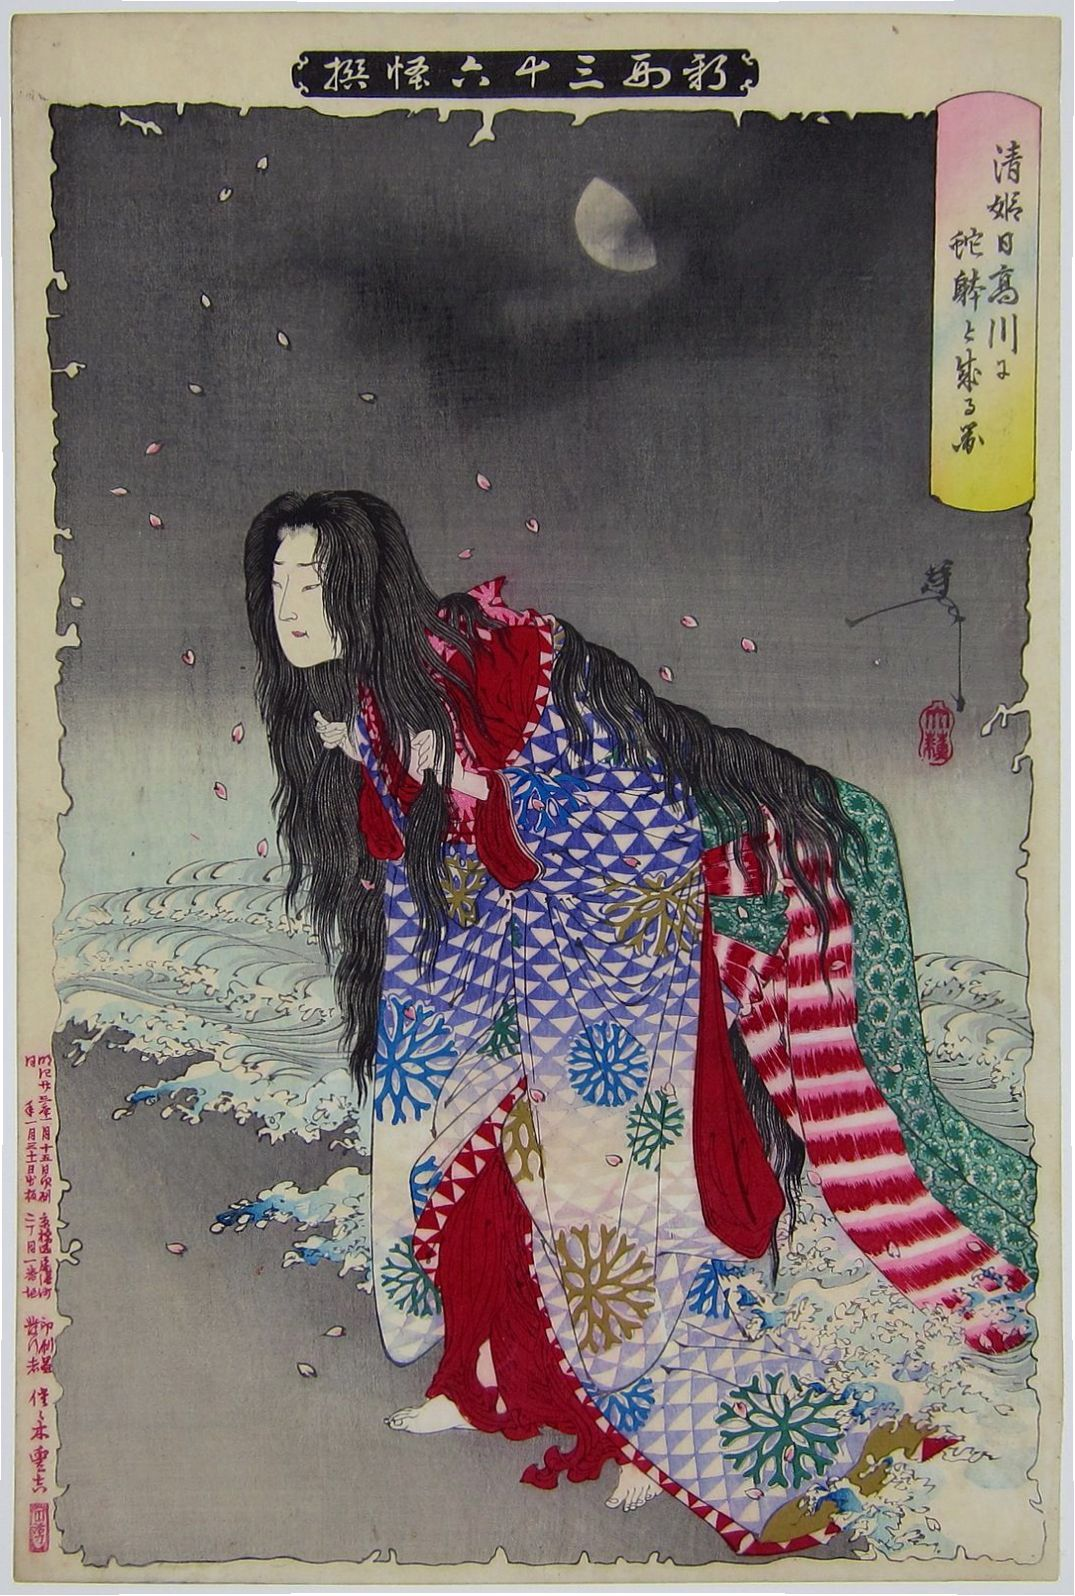 Kiyohime Changes into a Serpent at Hidaki River. 1/1890.